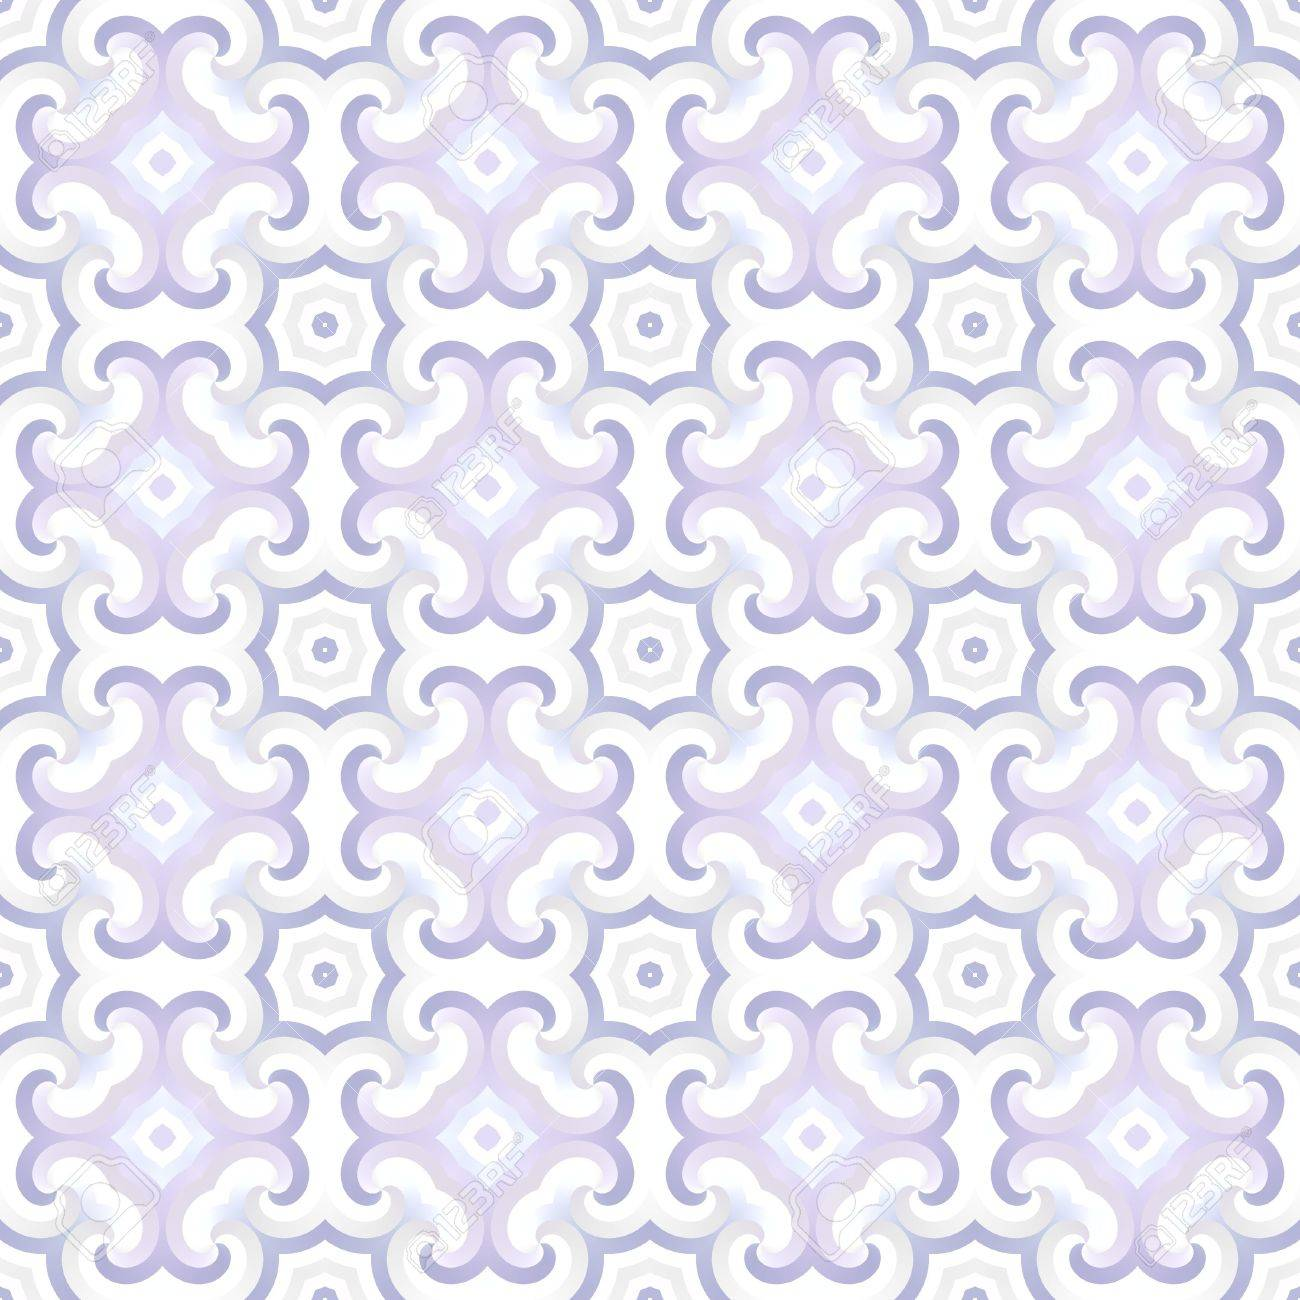 Pattern Tile In Pale Purple - Seamless Tiling Stock Photo, Picture ...